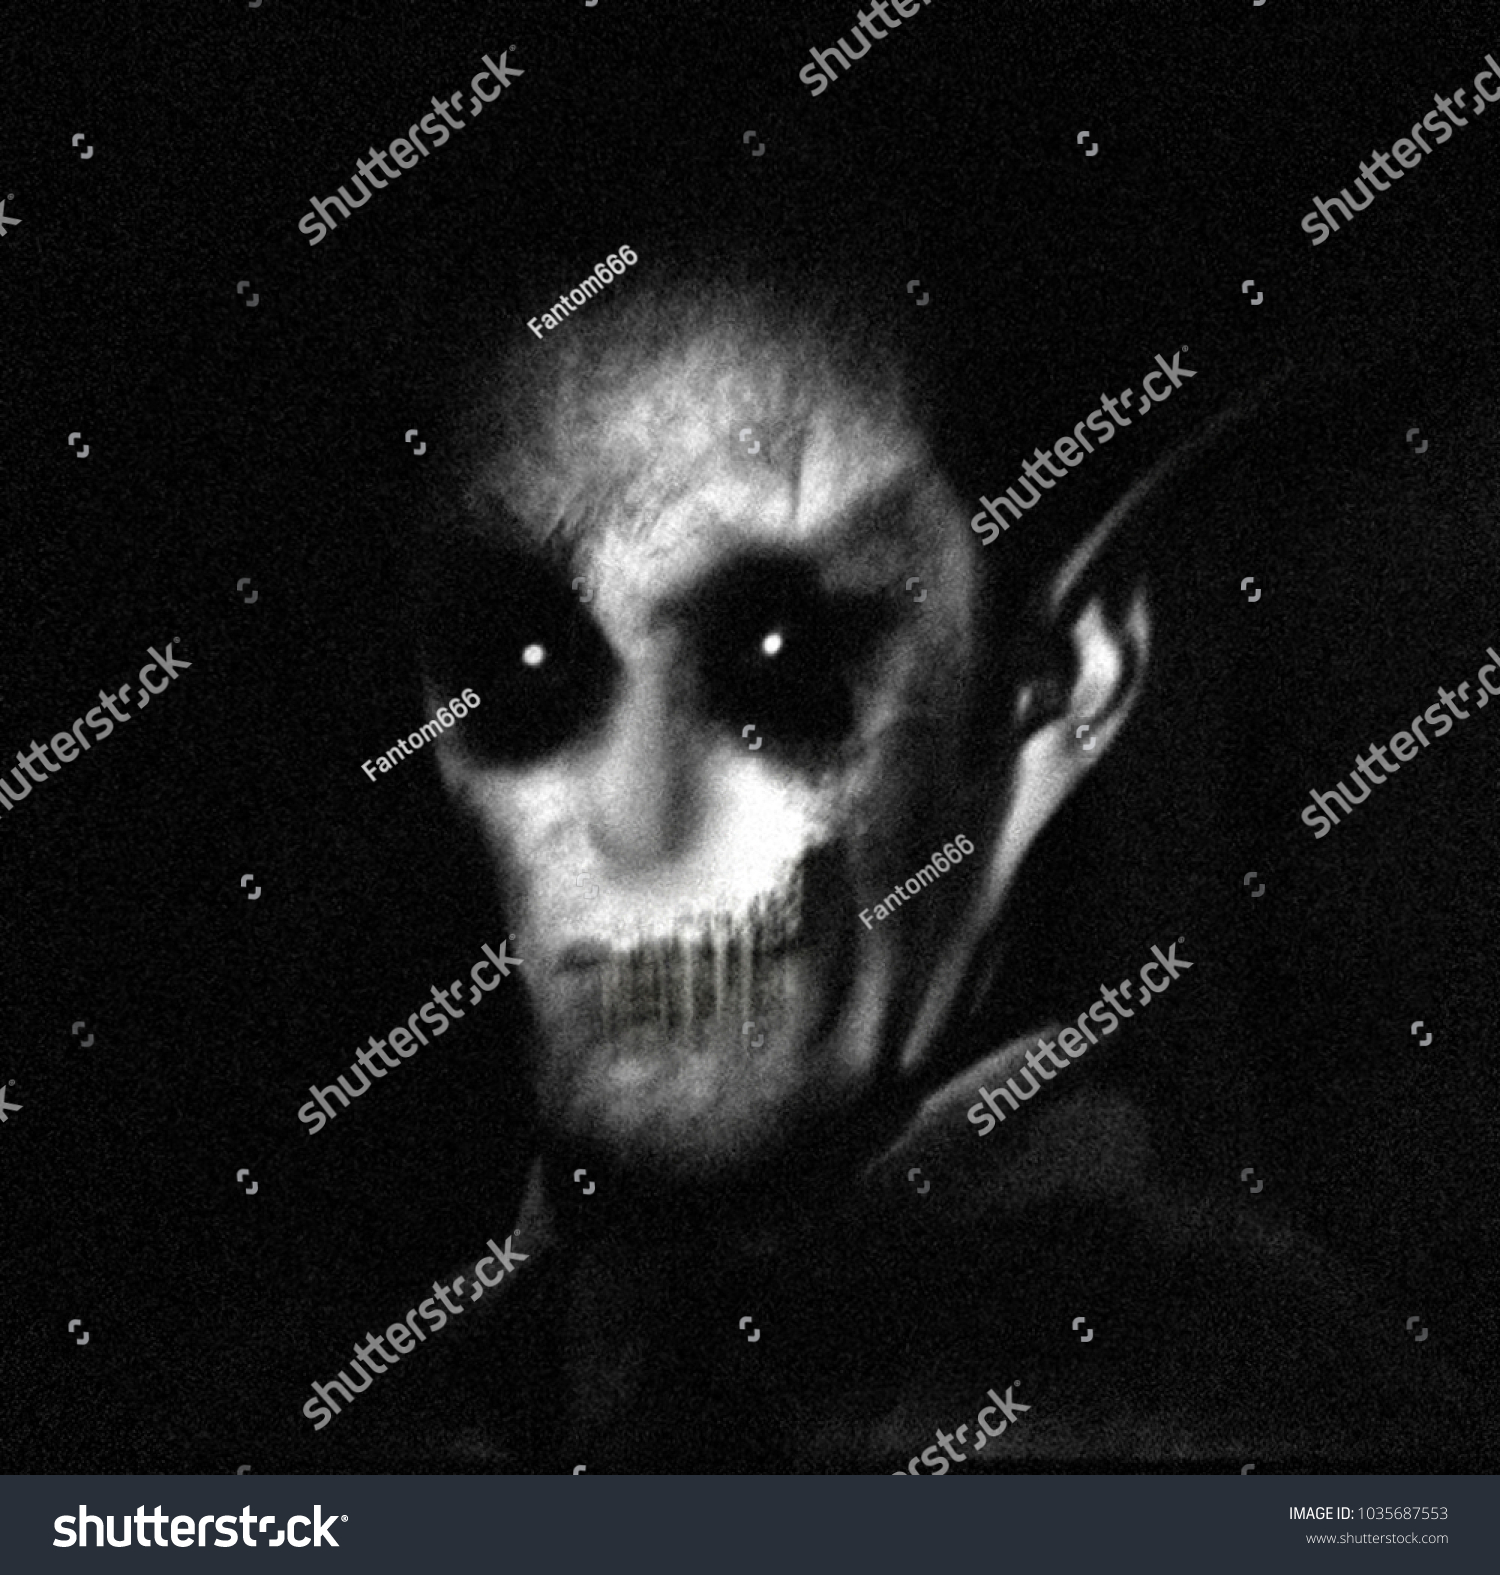 Cool Wallpaper Halloween Spooky - stock-photo-horror-background-with-scary-monster-halloween-spooky-wallpaper-1035687553  2018_41318.jpg